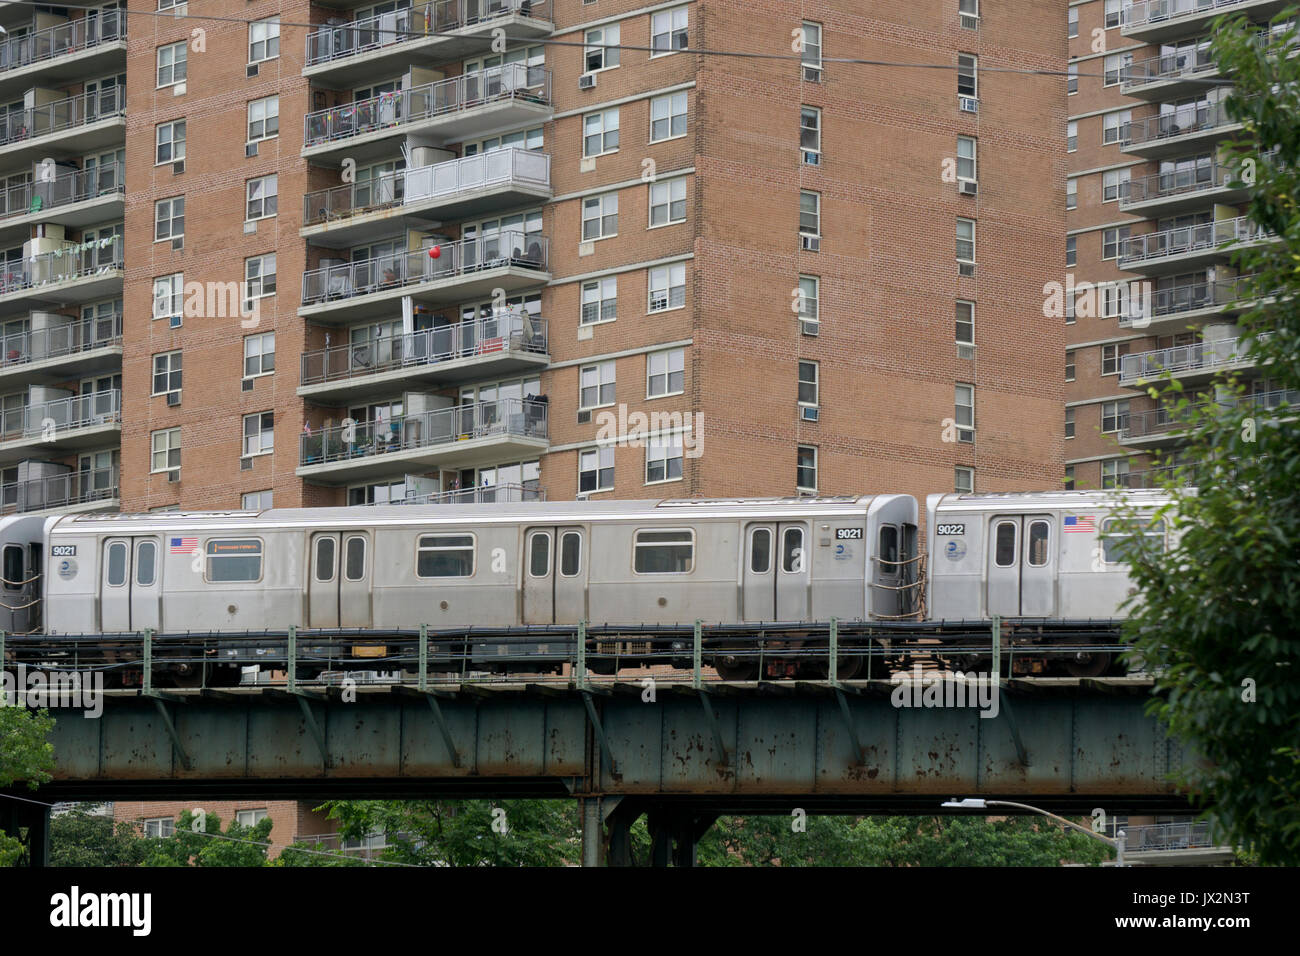 A noisy elevated New York City subway train passes several apartment houses in Brighton Beach Brooklyn, New York - Stock Image